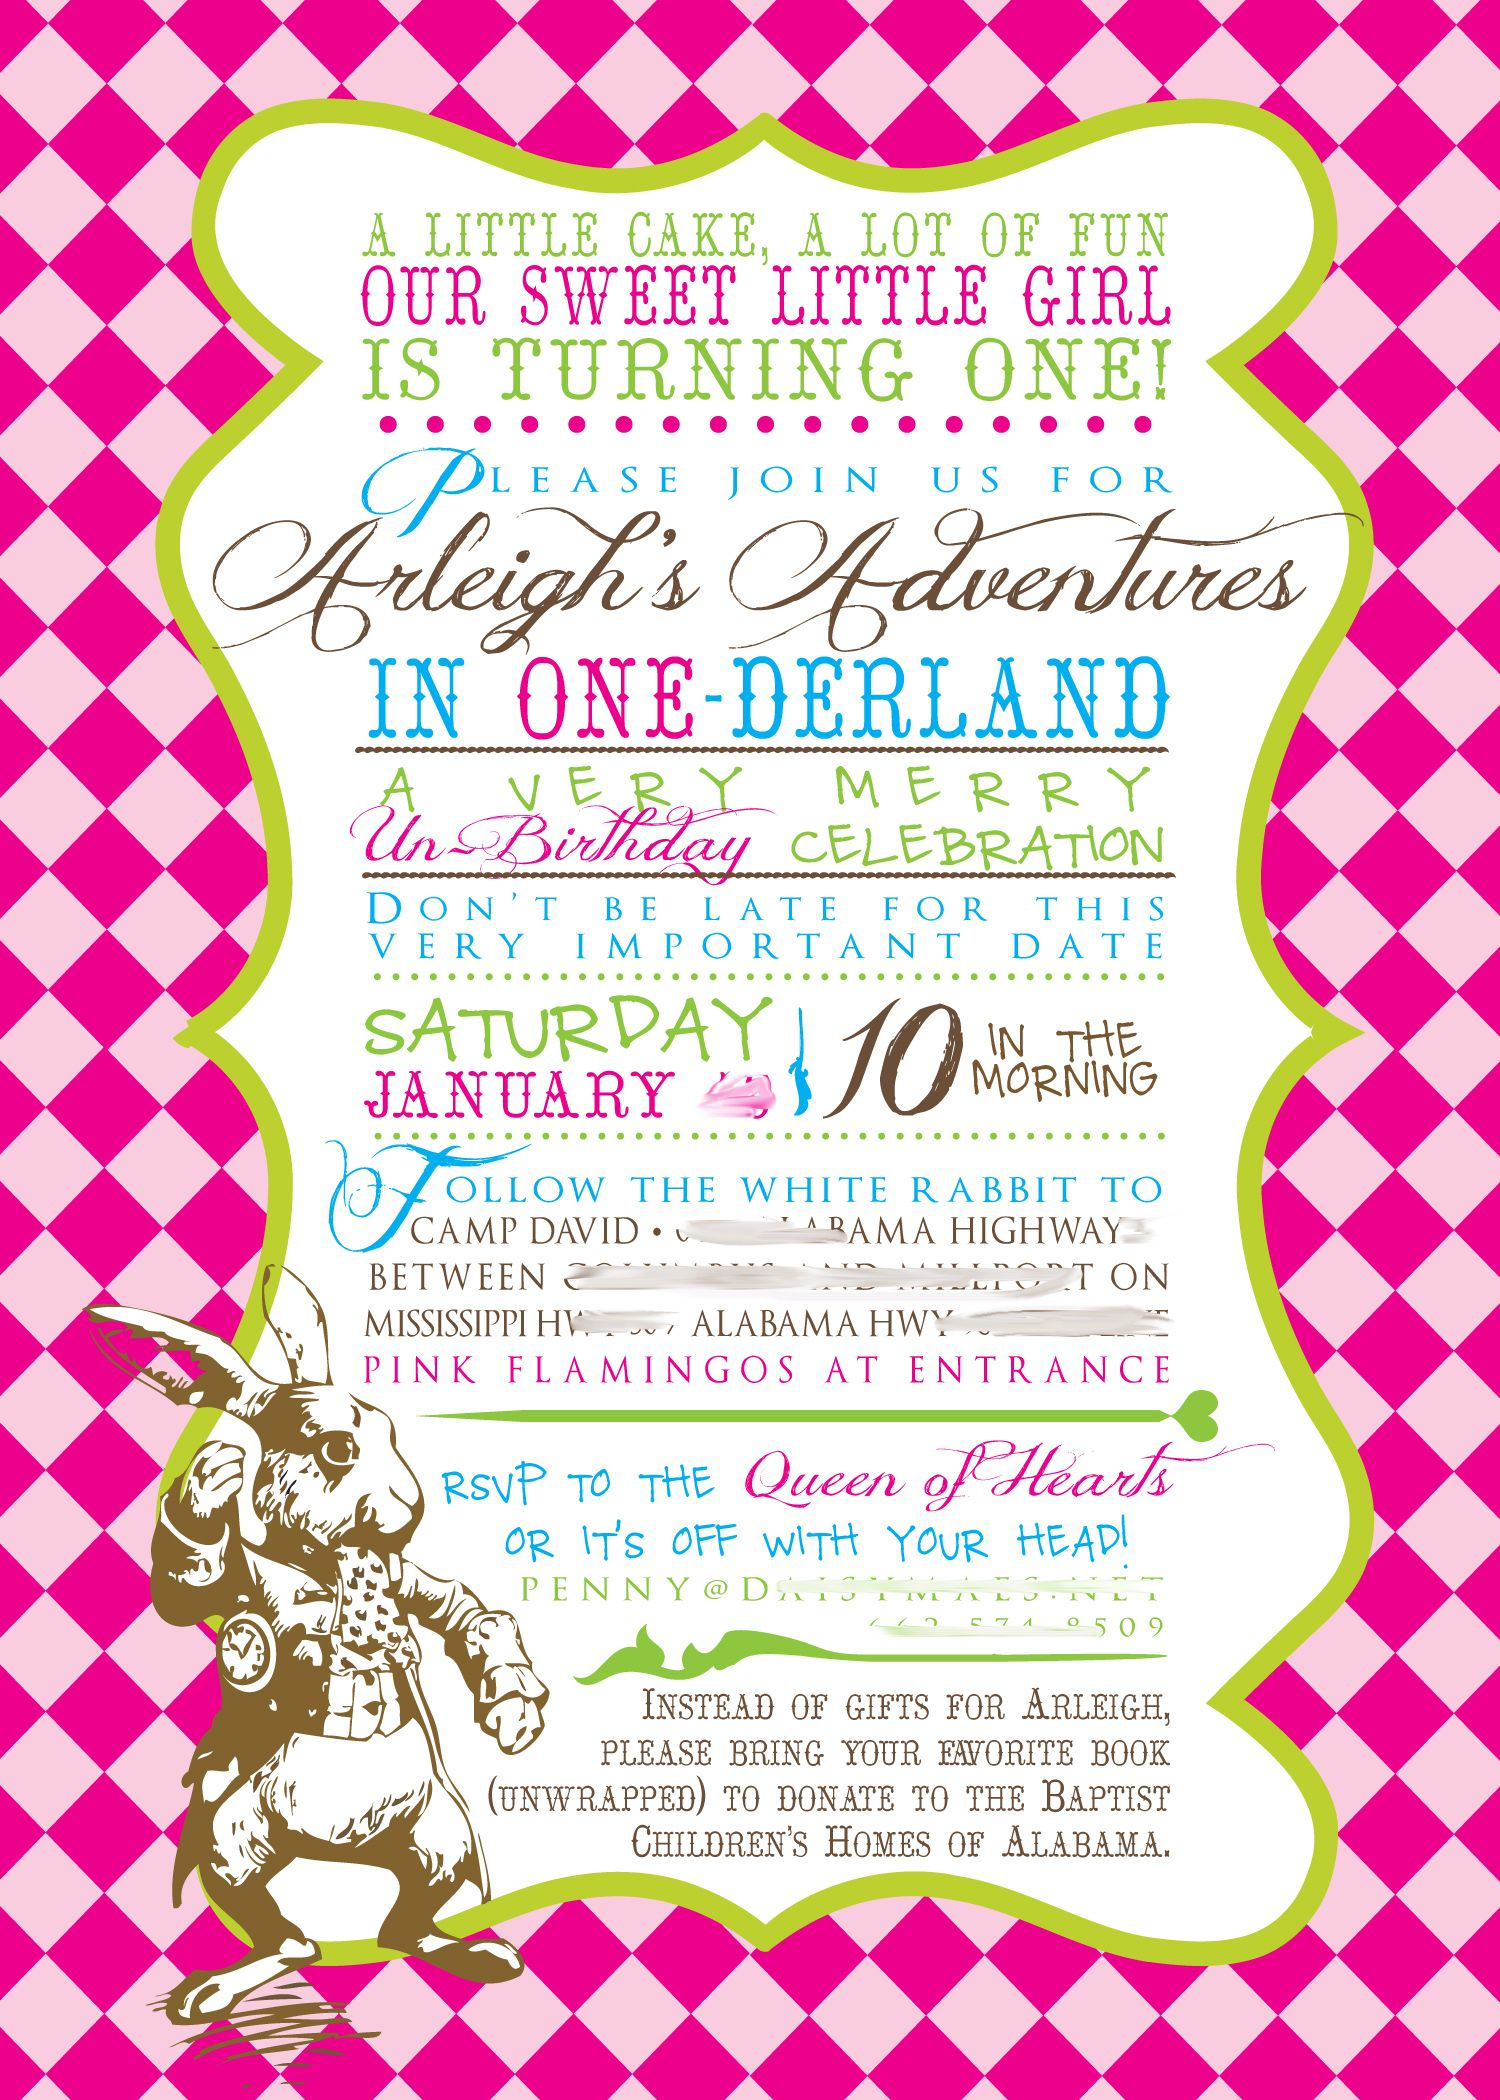 First birthday onederland invitation alice in wonderland invitation first birthday onederland invitation alice in wonderland invitation first birthday invitation instead of gifts bring a donation books filmwisefo